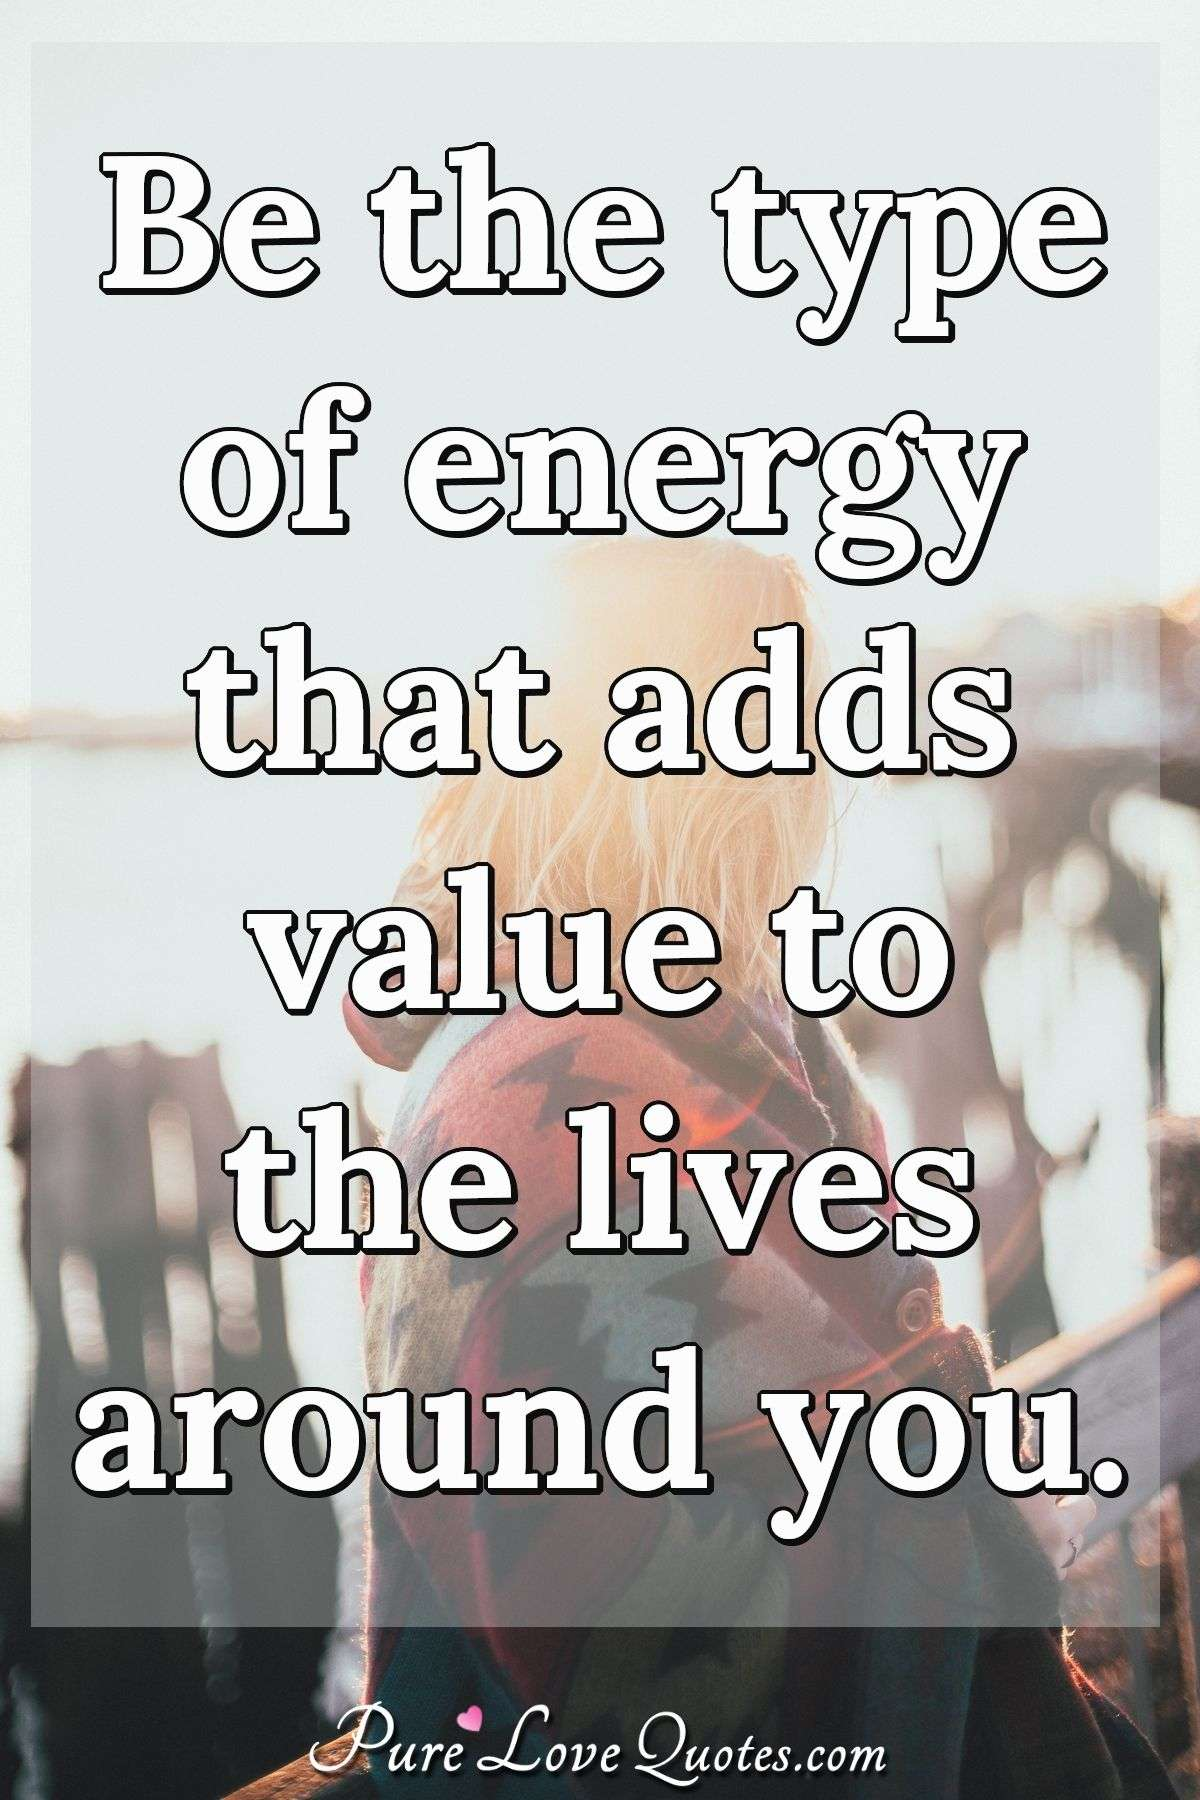 Be the type of energy that adds value to the lives around you. - Anonymous